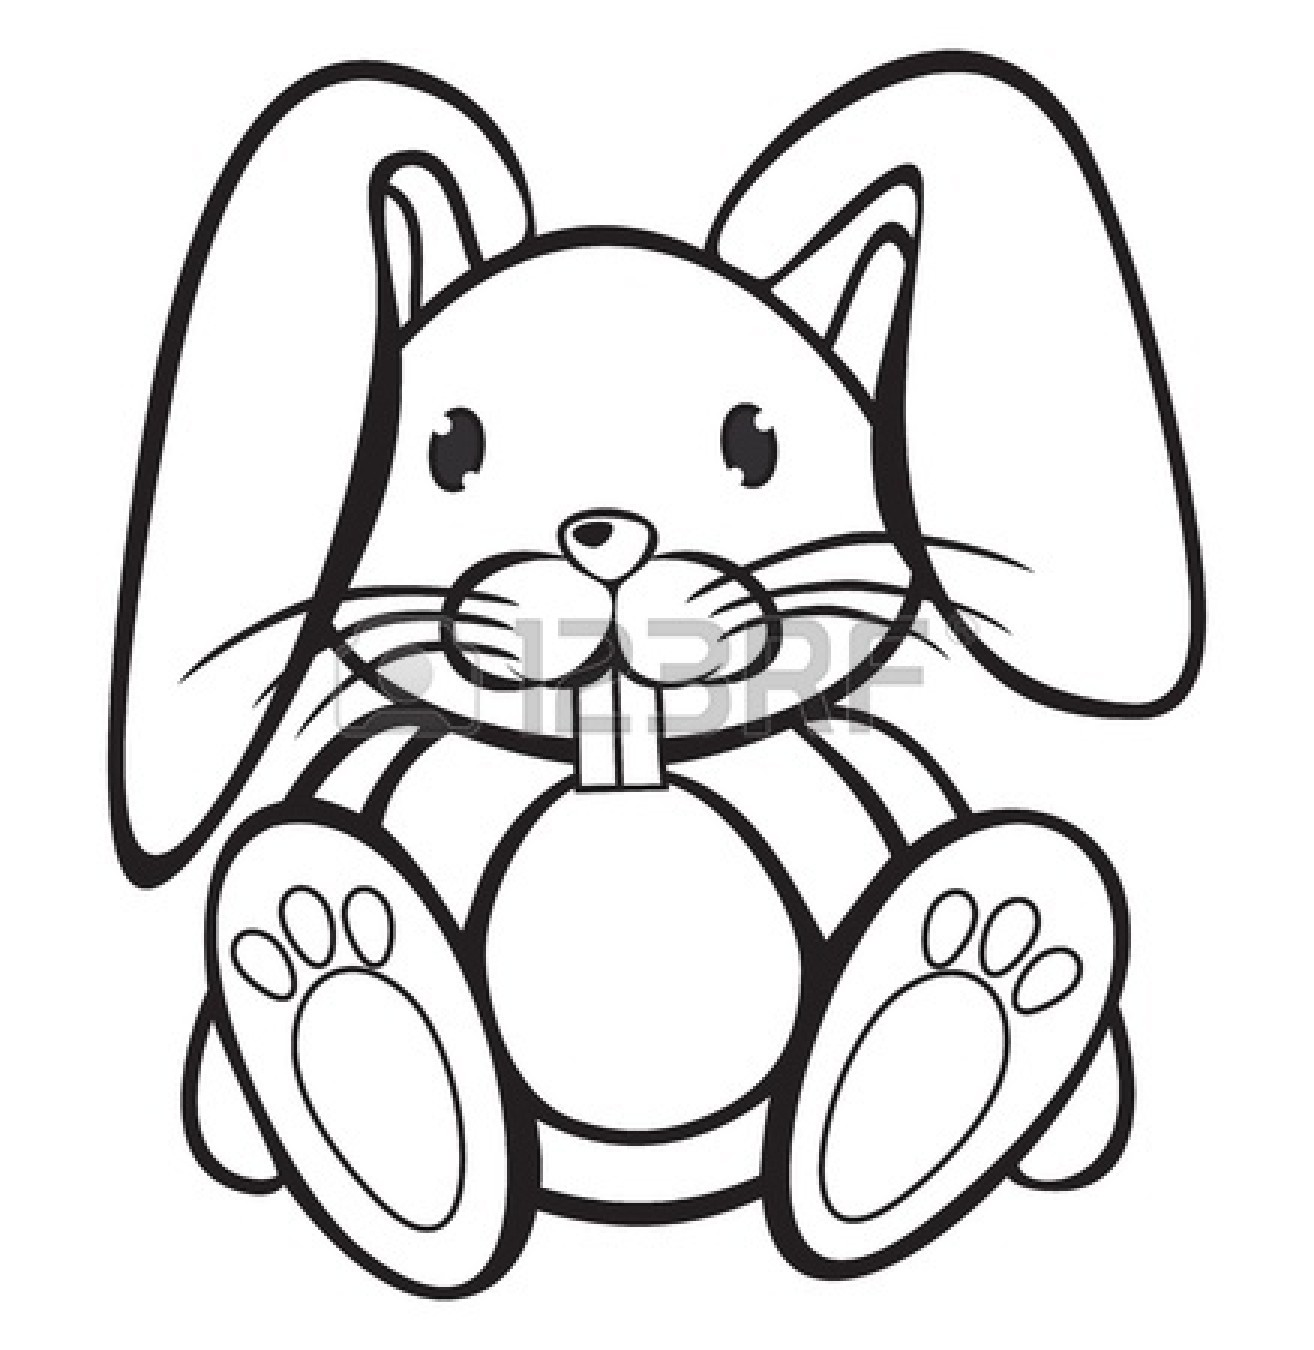 bunny clipart black and white clipart panda free clipart images rh clipartpanda com animated bunny rabbit clipart bunny rabbit clipart black and white